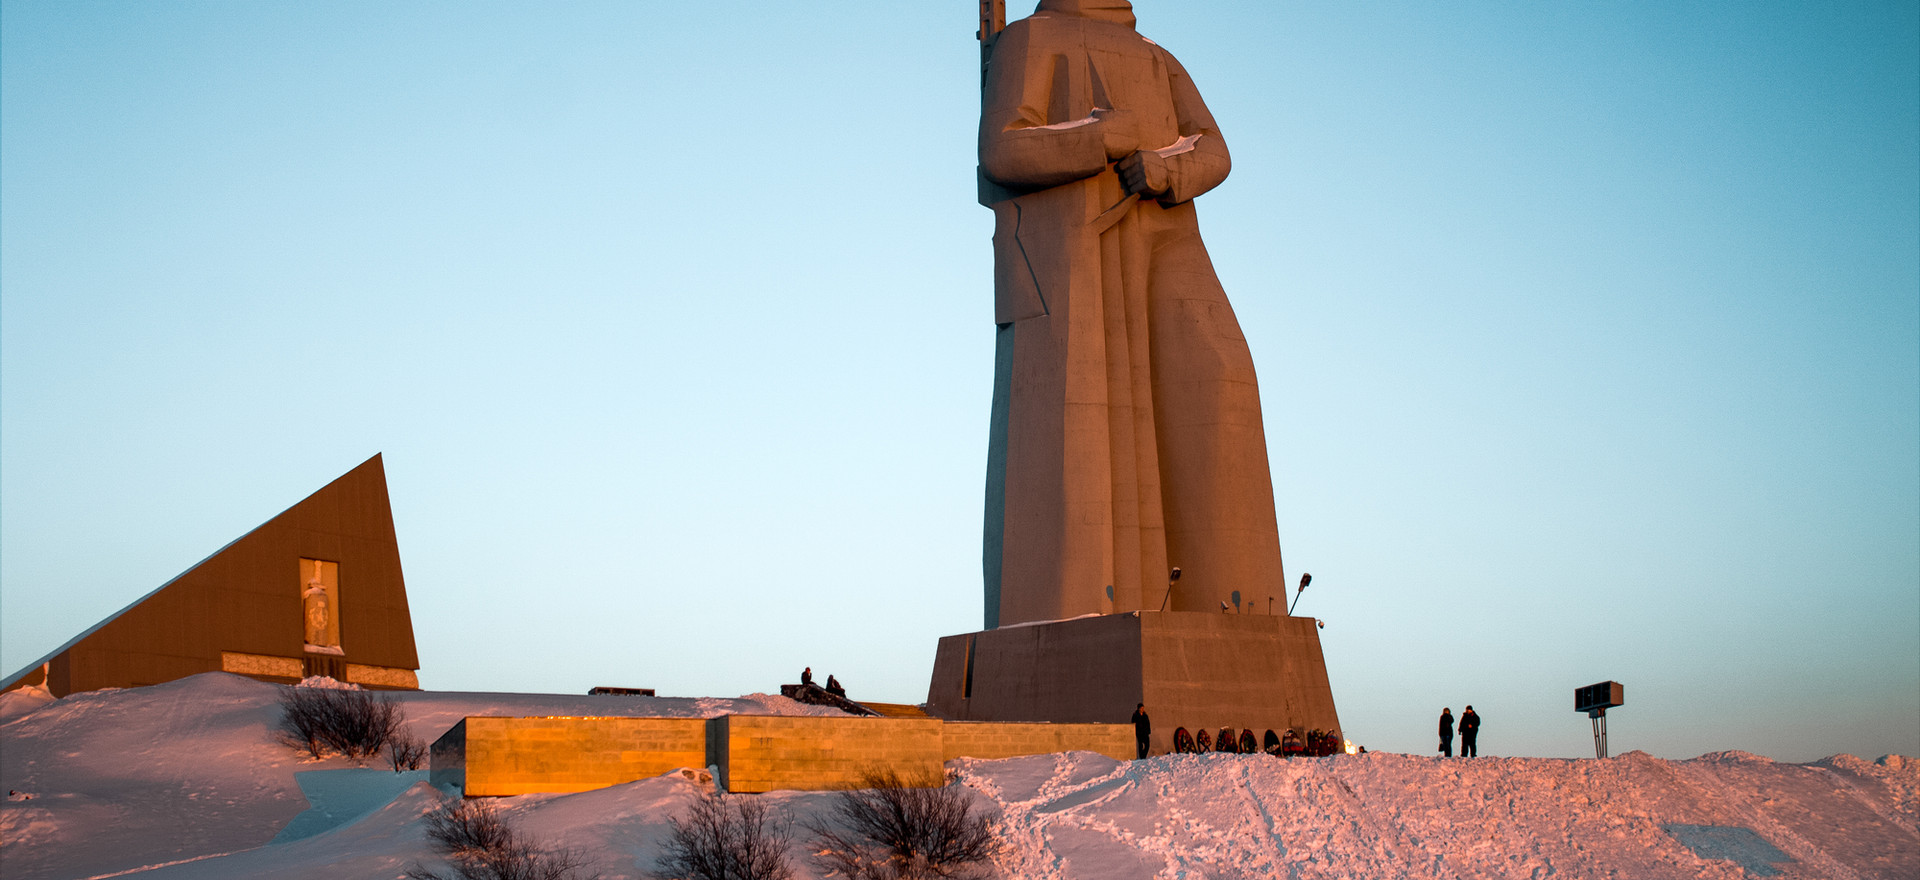 Murmansk protector at sunset, Russia.